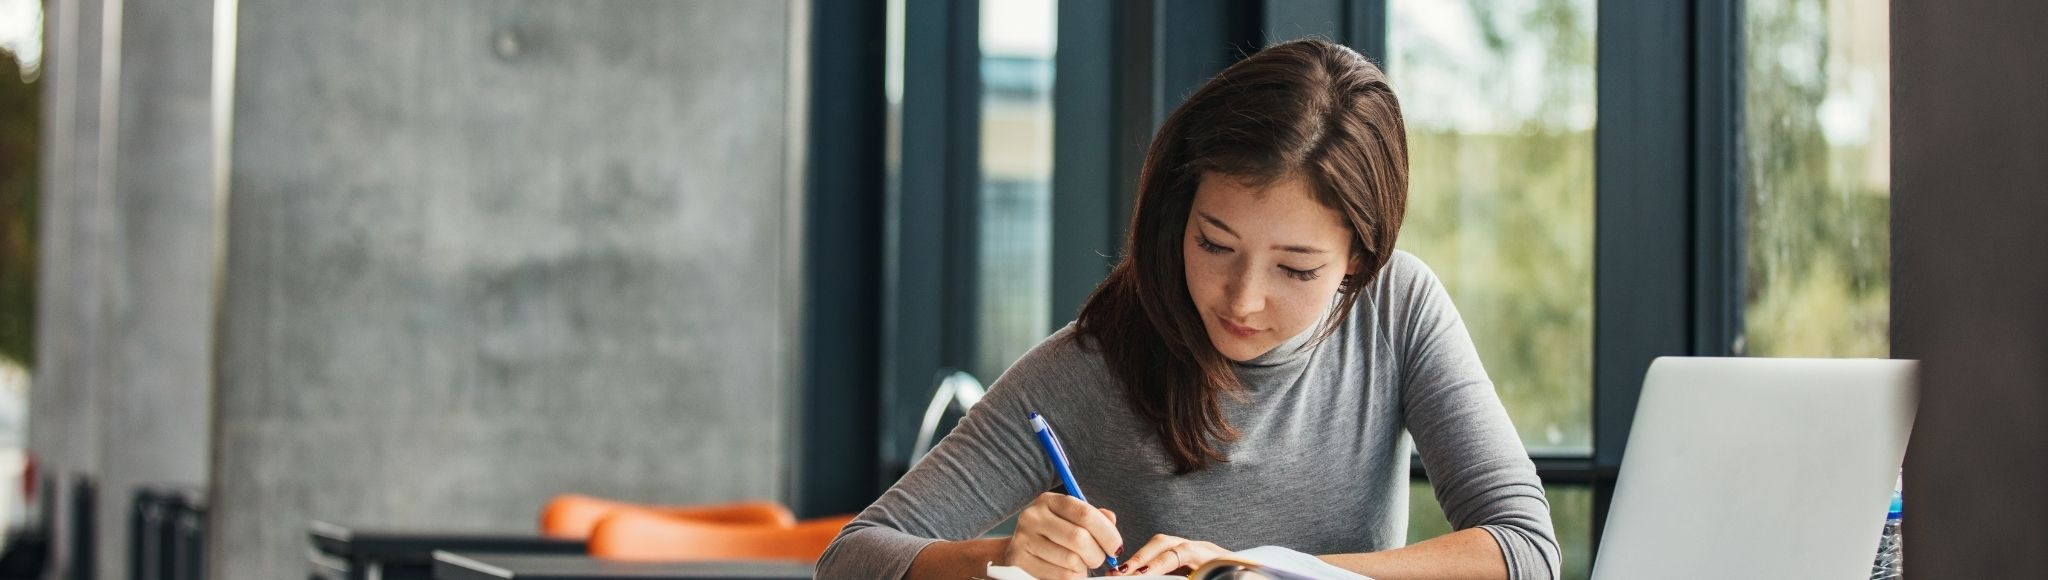 is a 120 hour TEFL course enough?